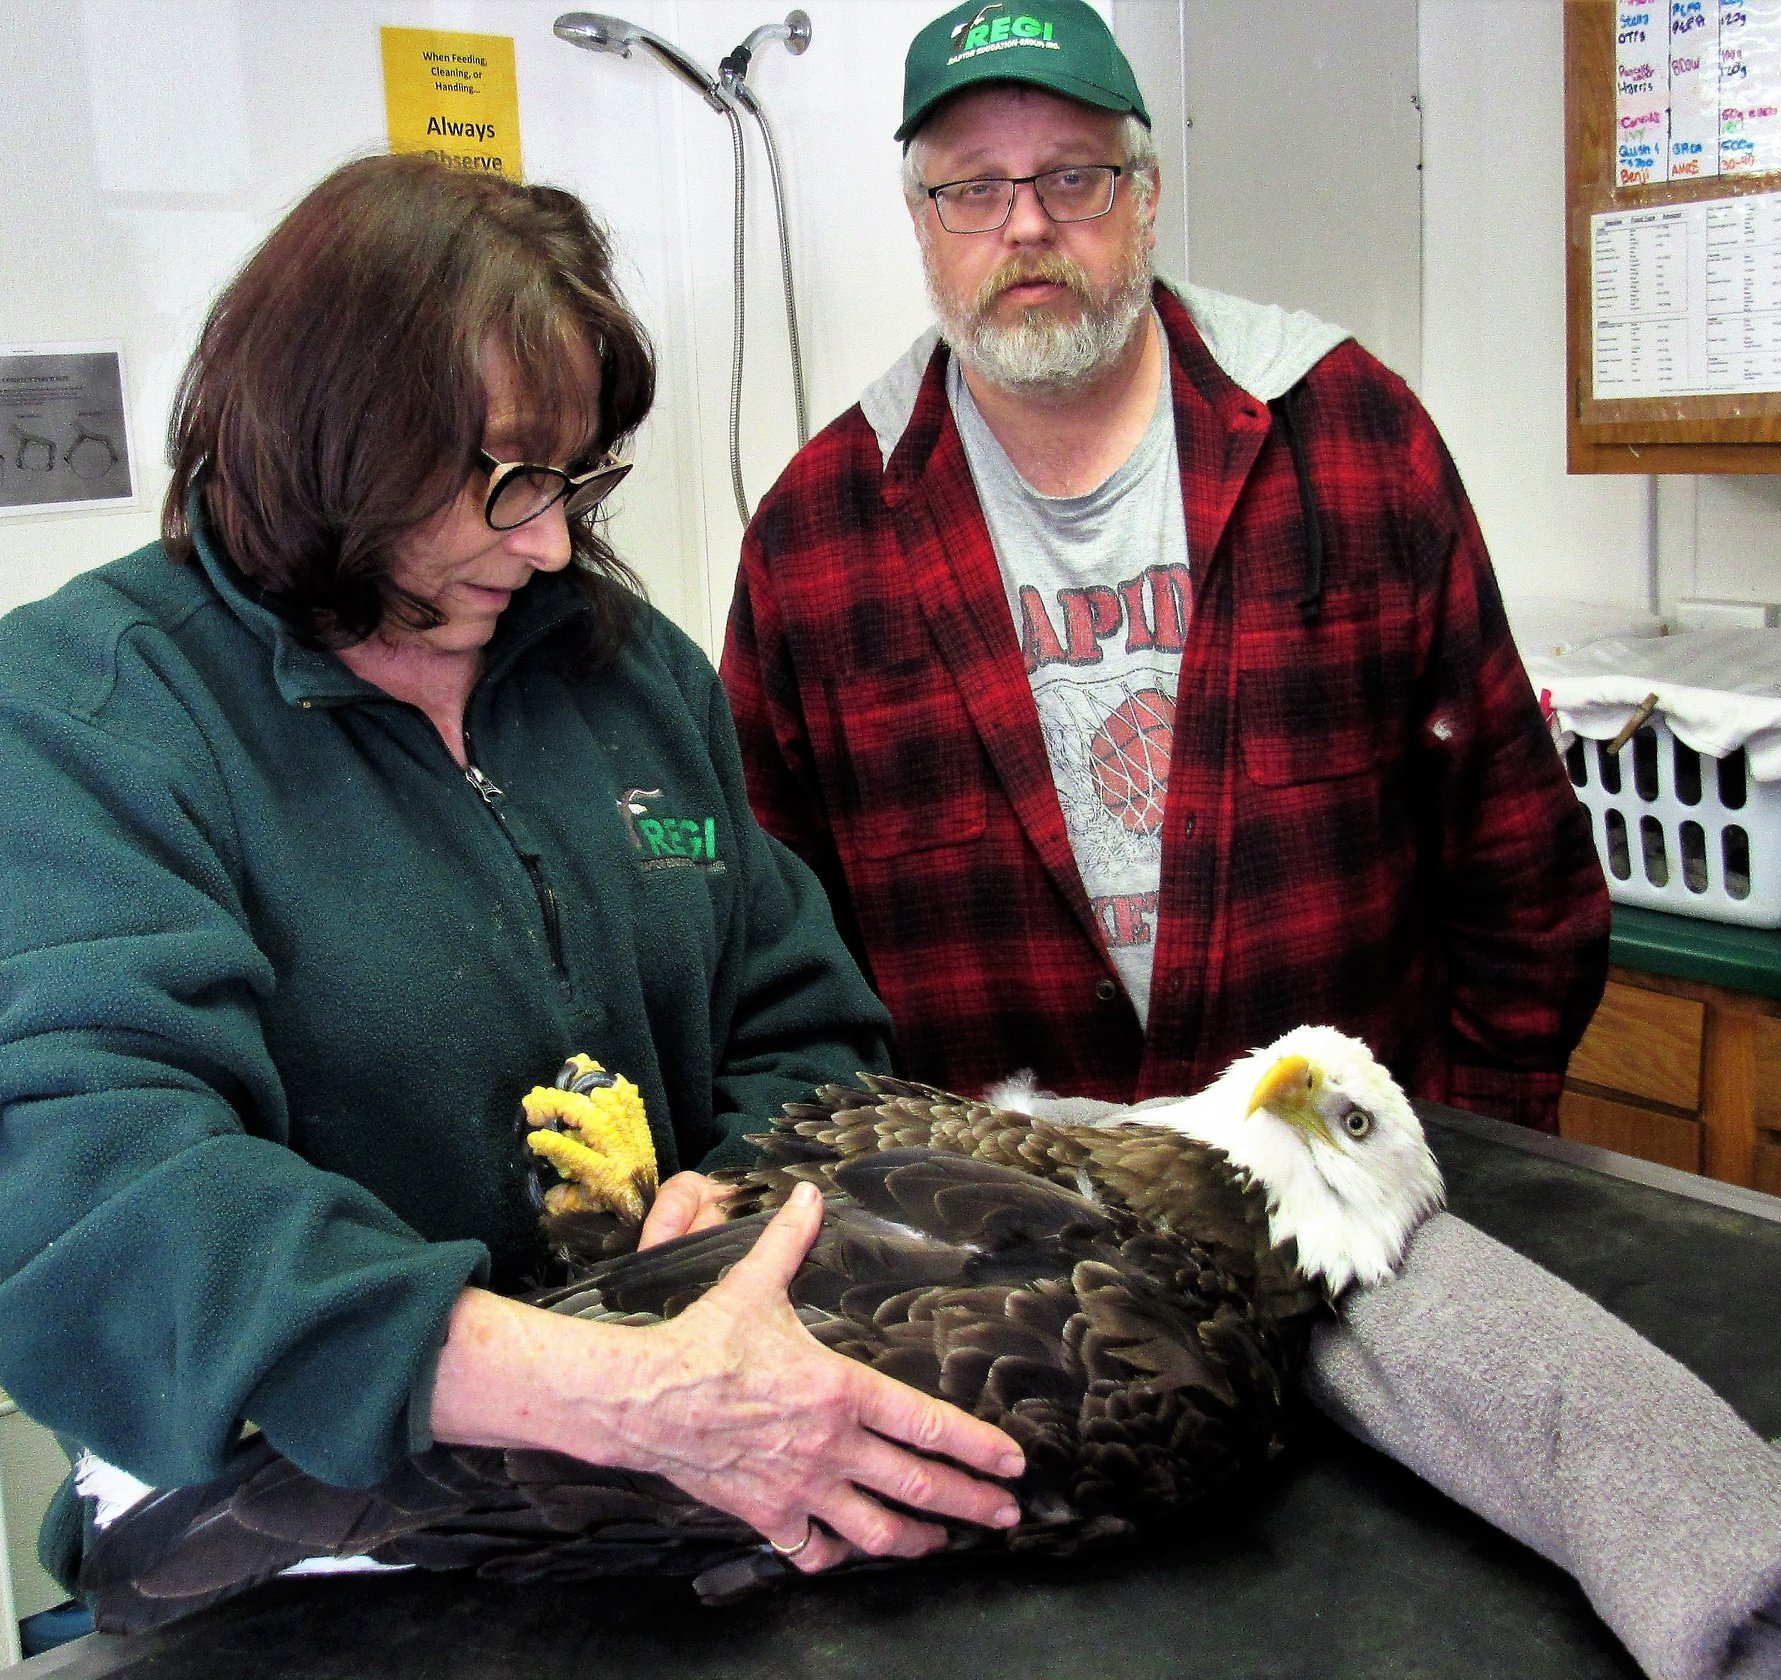 Thanks to Mark O'Shasky for transporting the Bald Eagle to REGI for care.